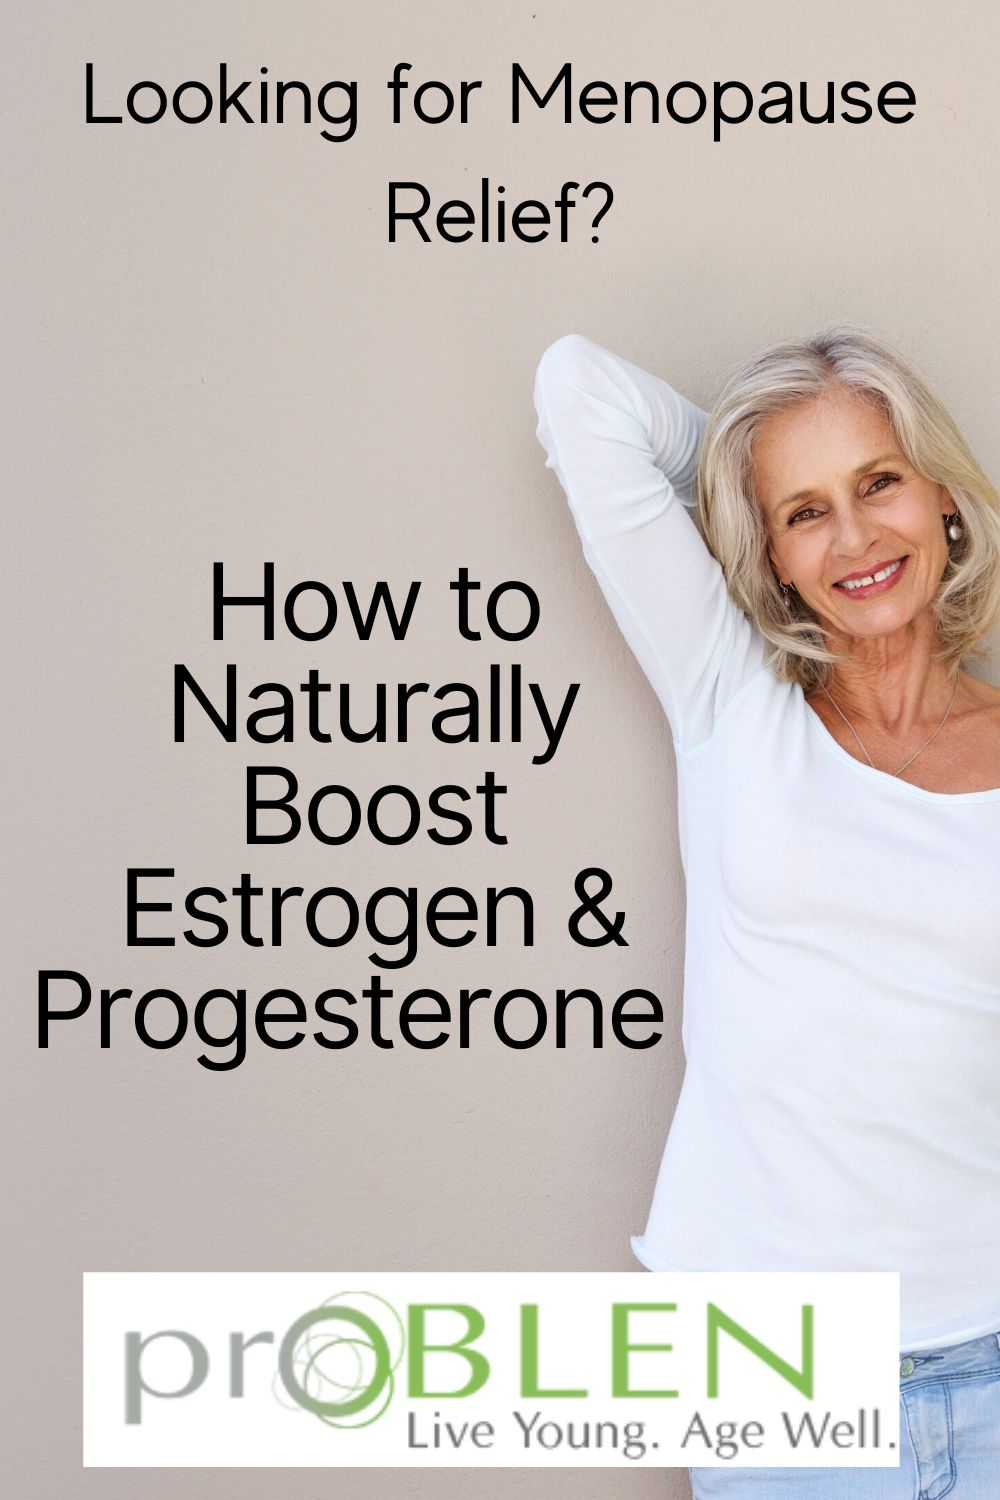 menopause relief natural homeopathic estrogen progesterone help